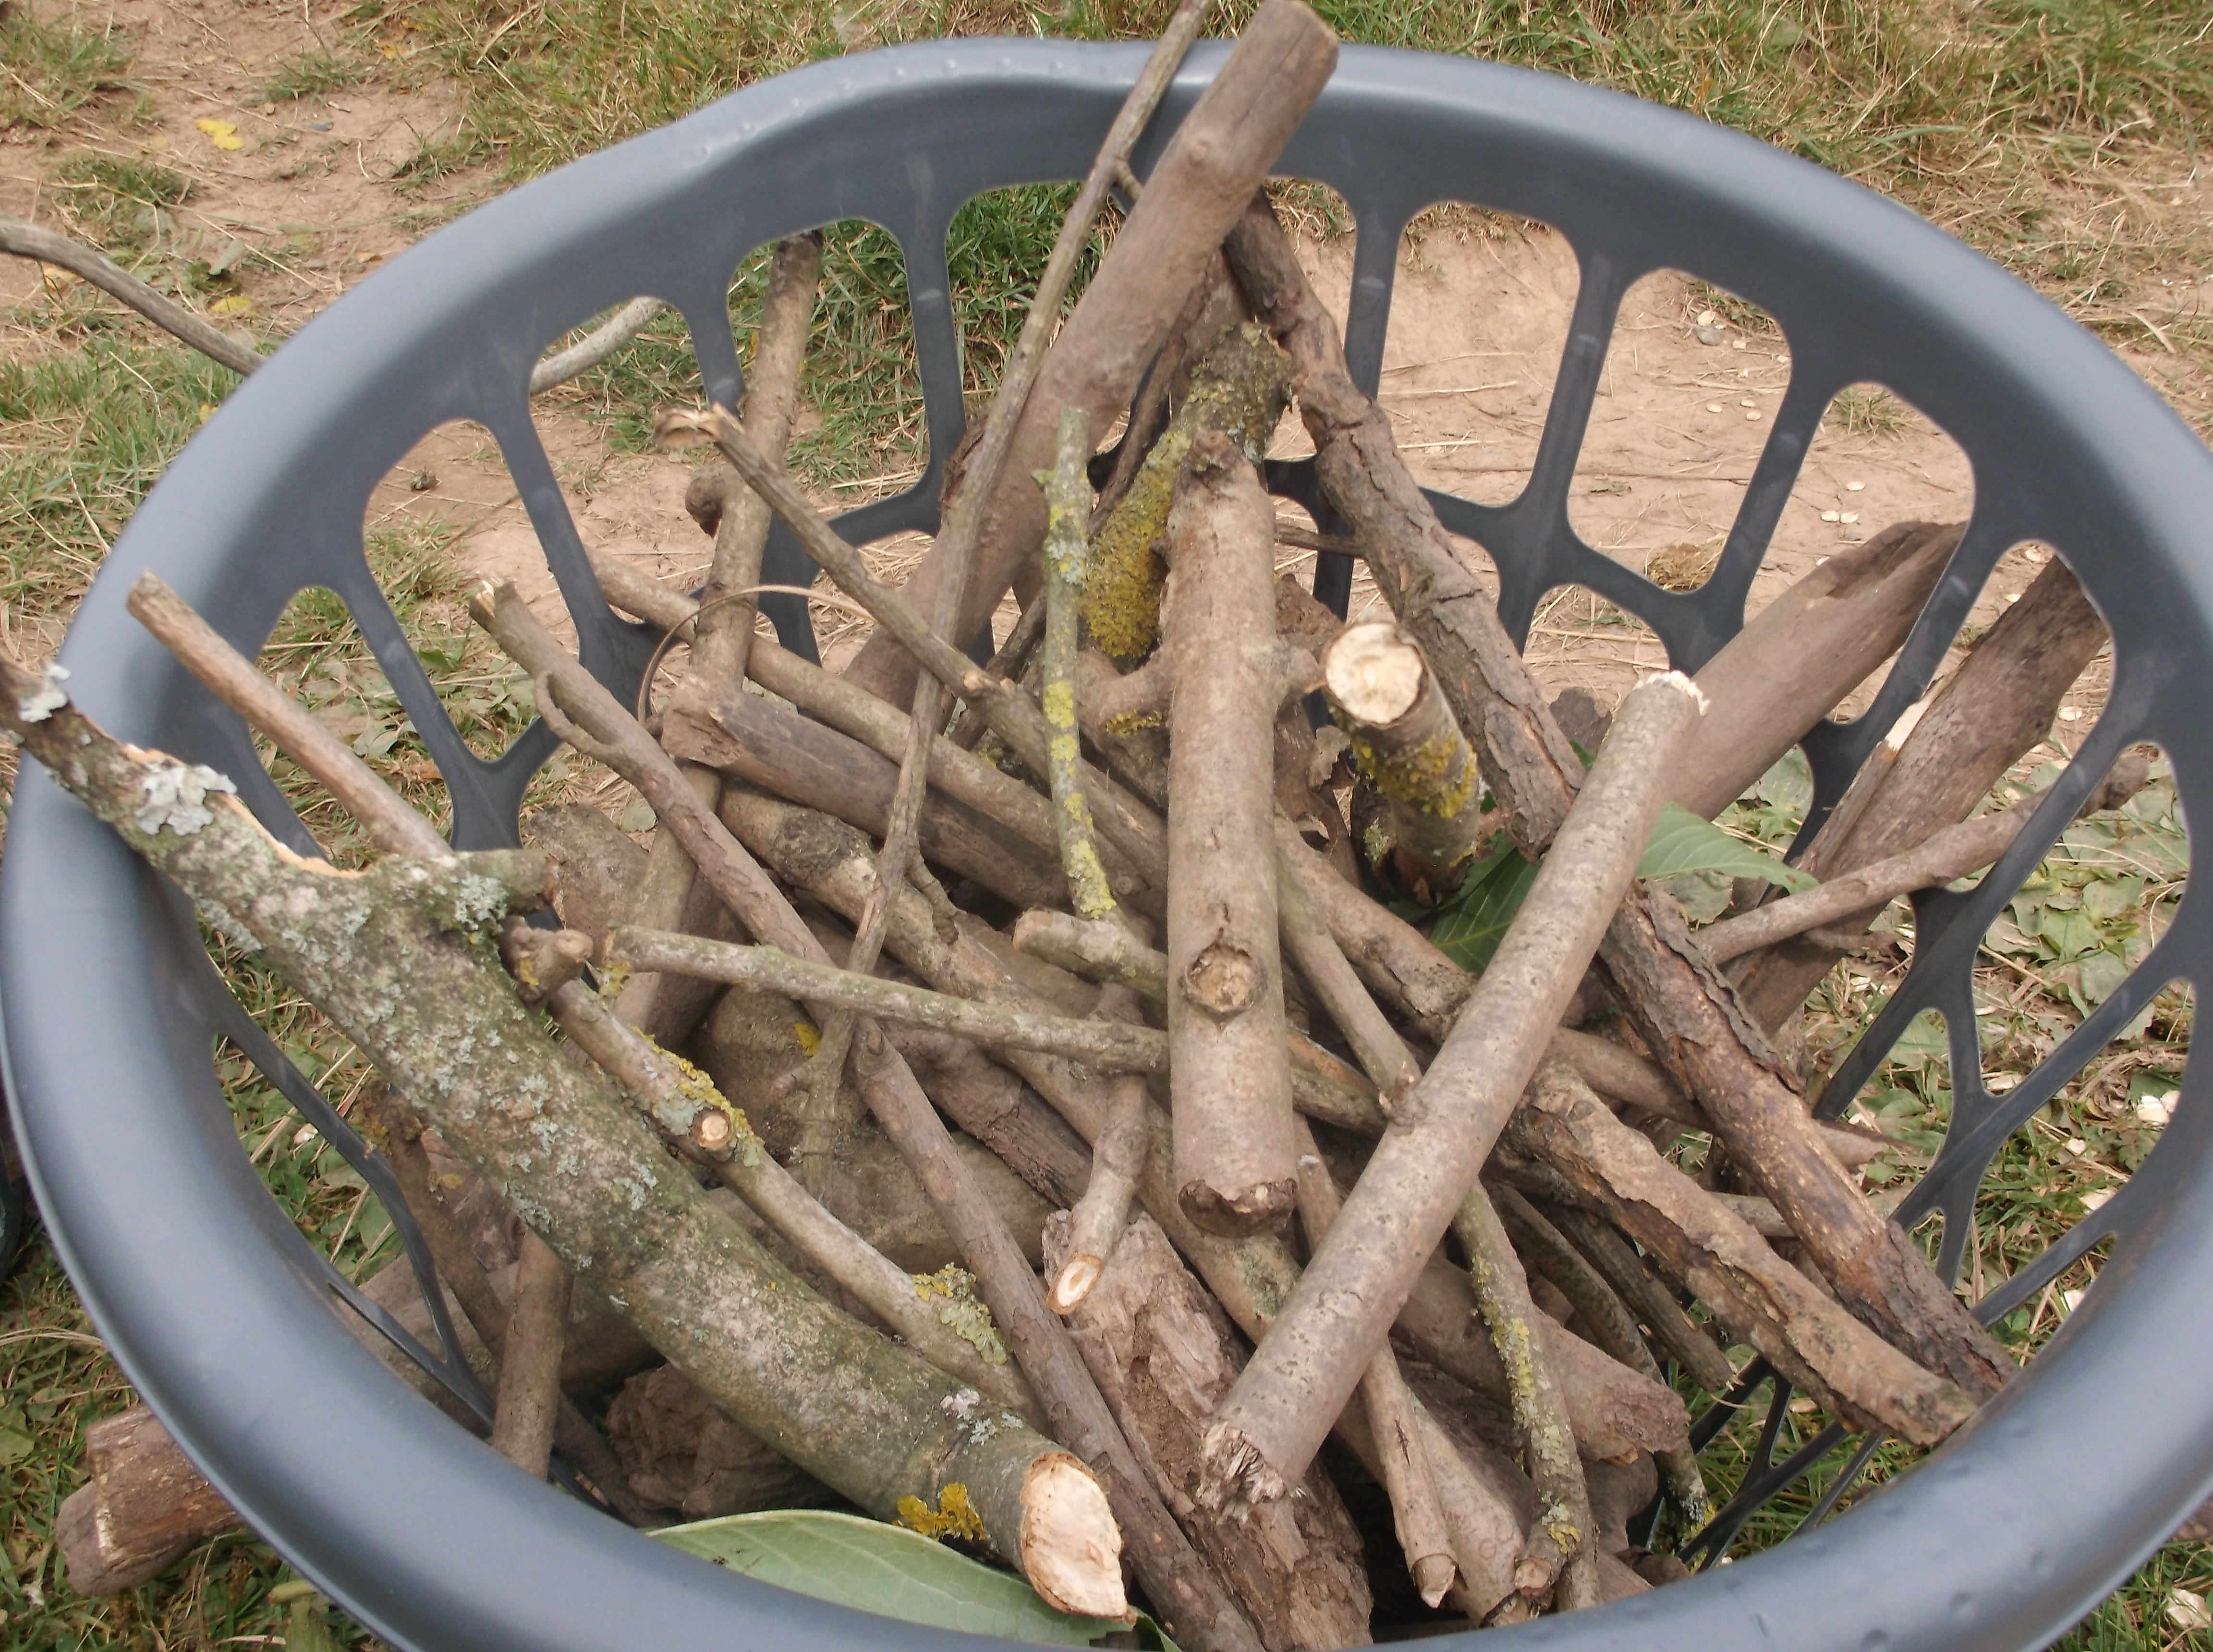 Collected sticks